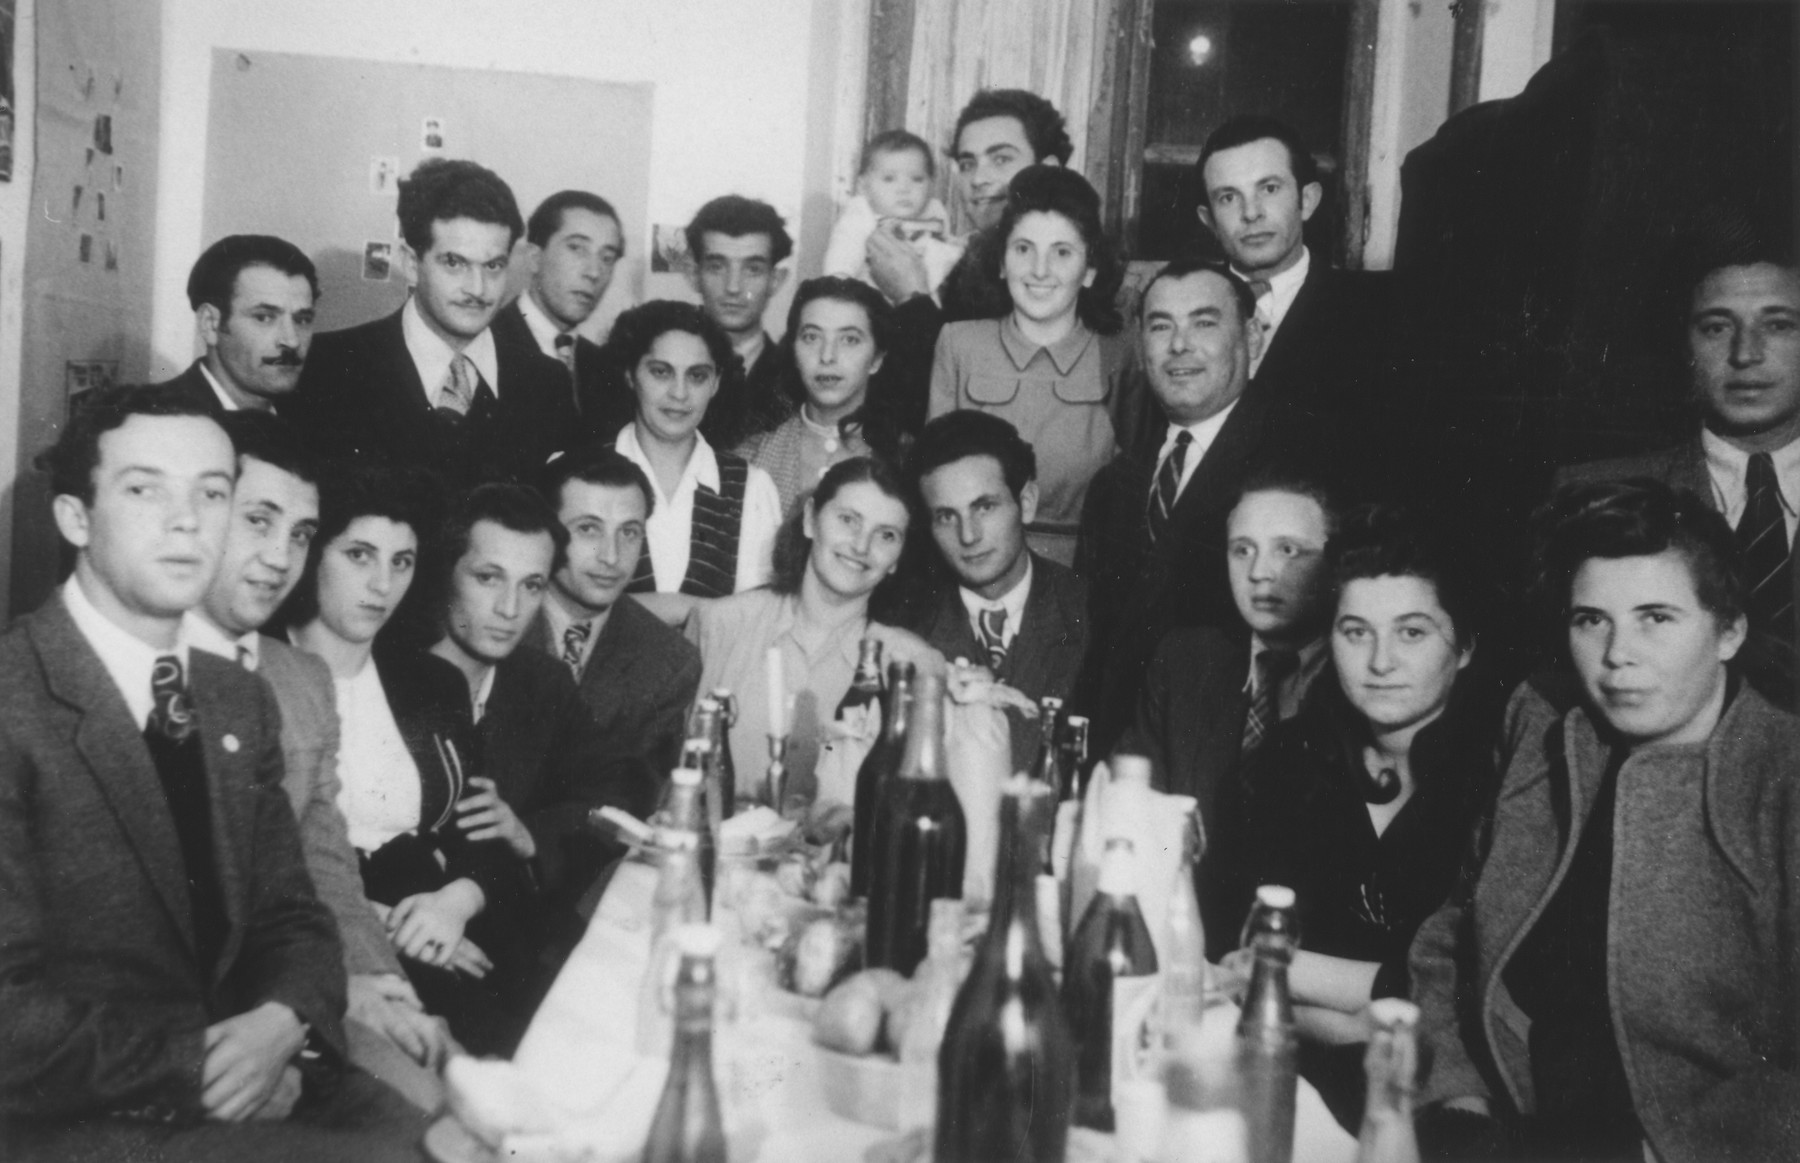 Engagement party for Pinkus Gipsman and Etta Falakovics.  Among those pictured is Jerome (Jacob) Hollander, seated second from the left.